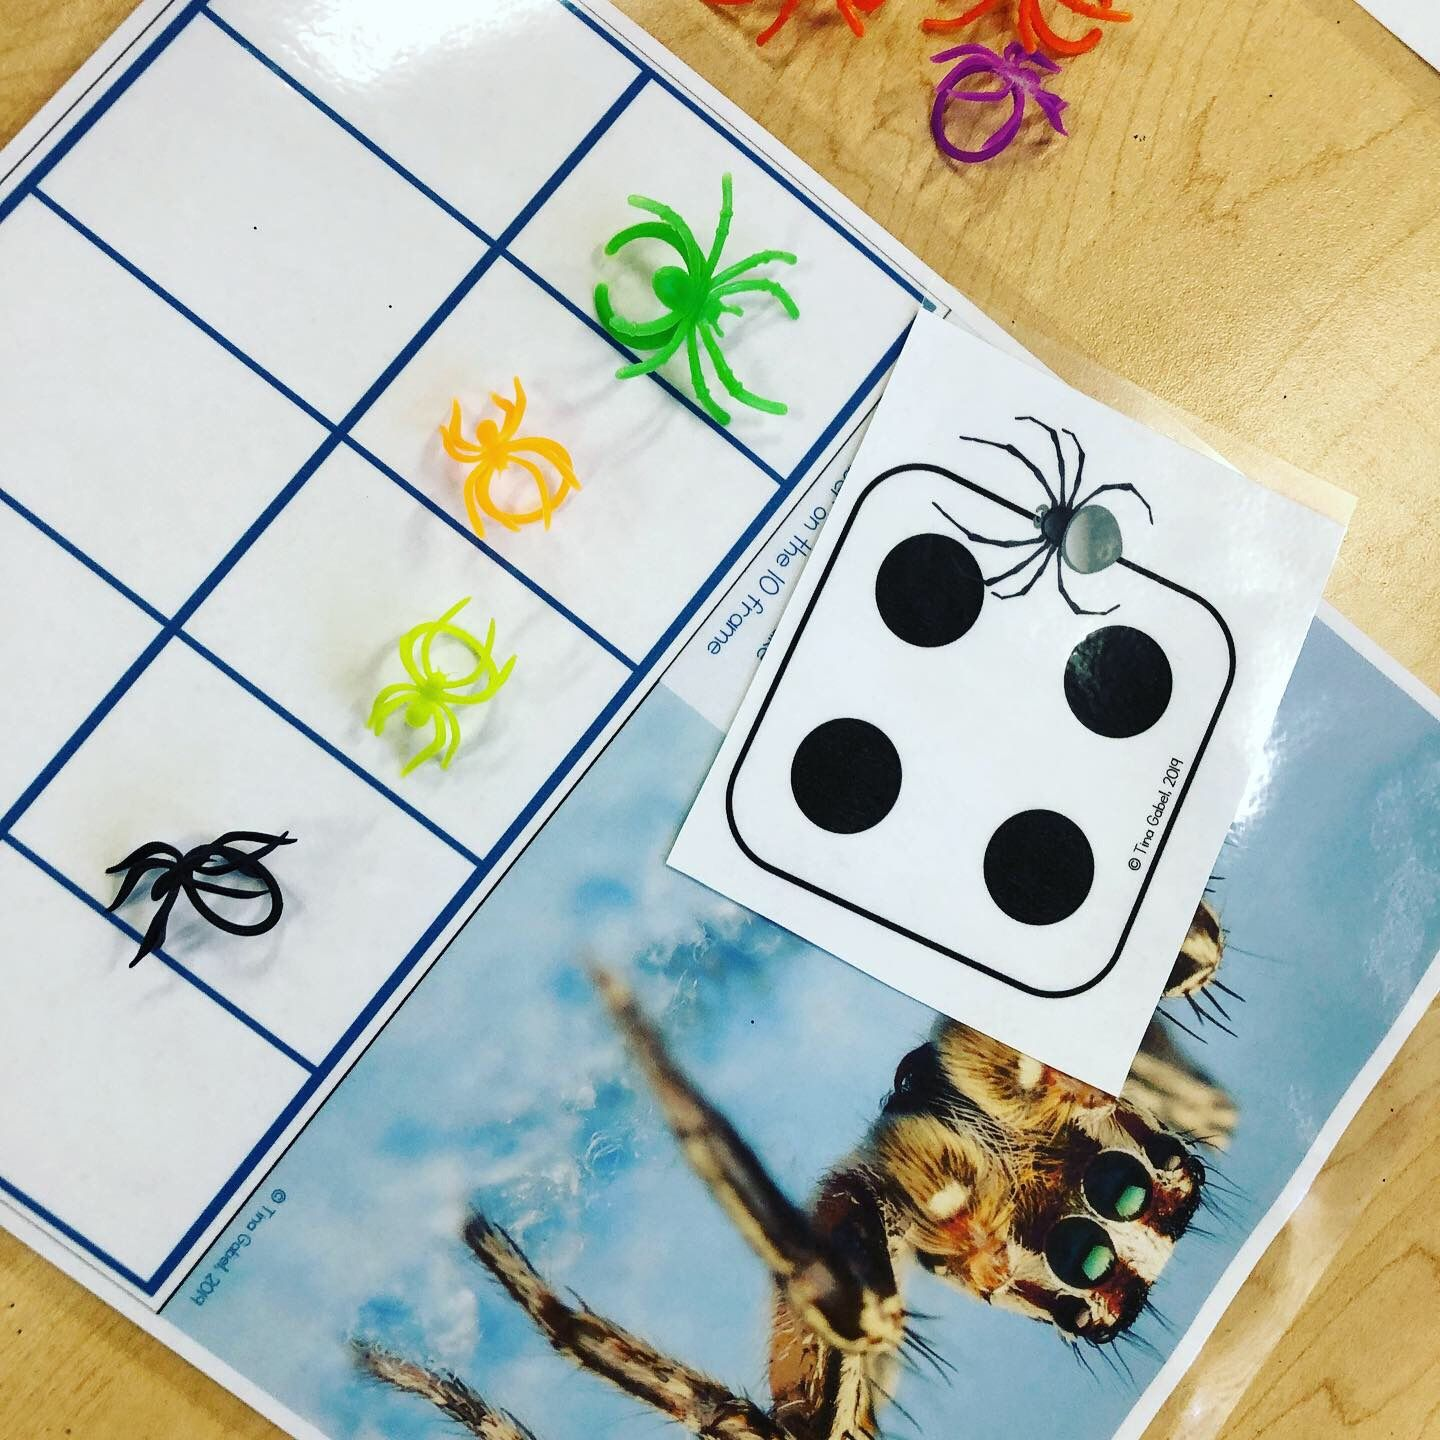 Spider Life Cycle Math Literacy And Science